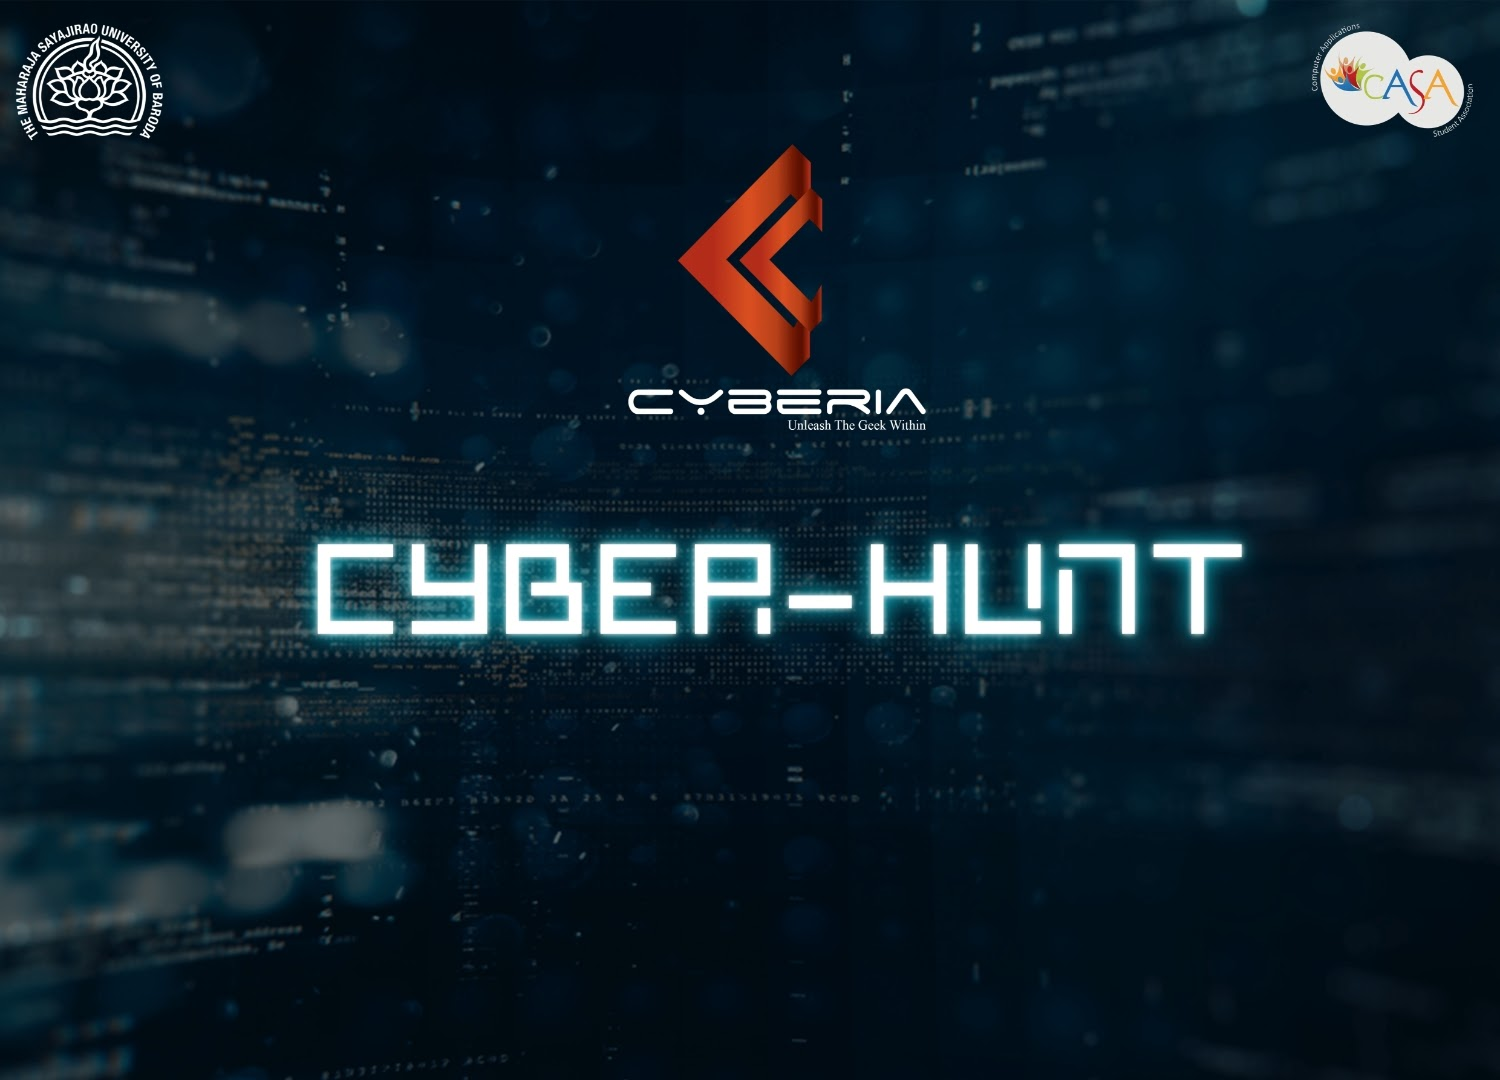 Cyber-Hunt Image